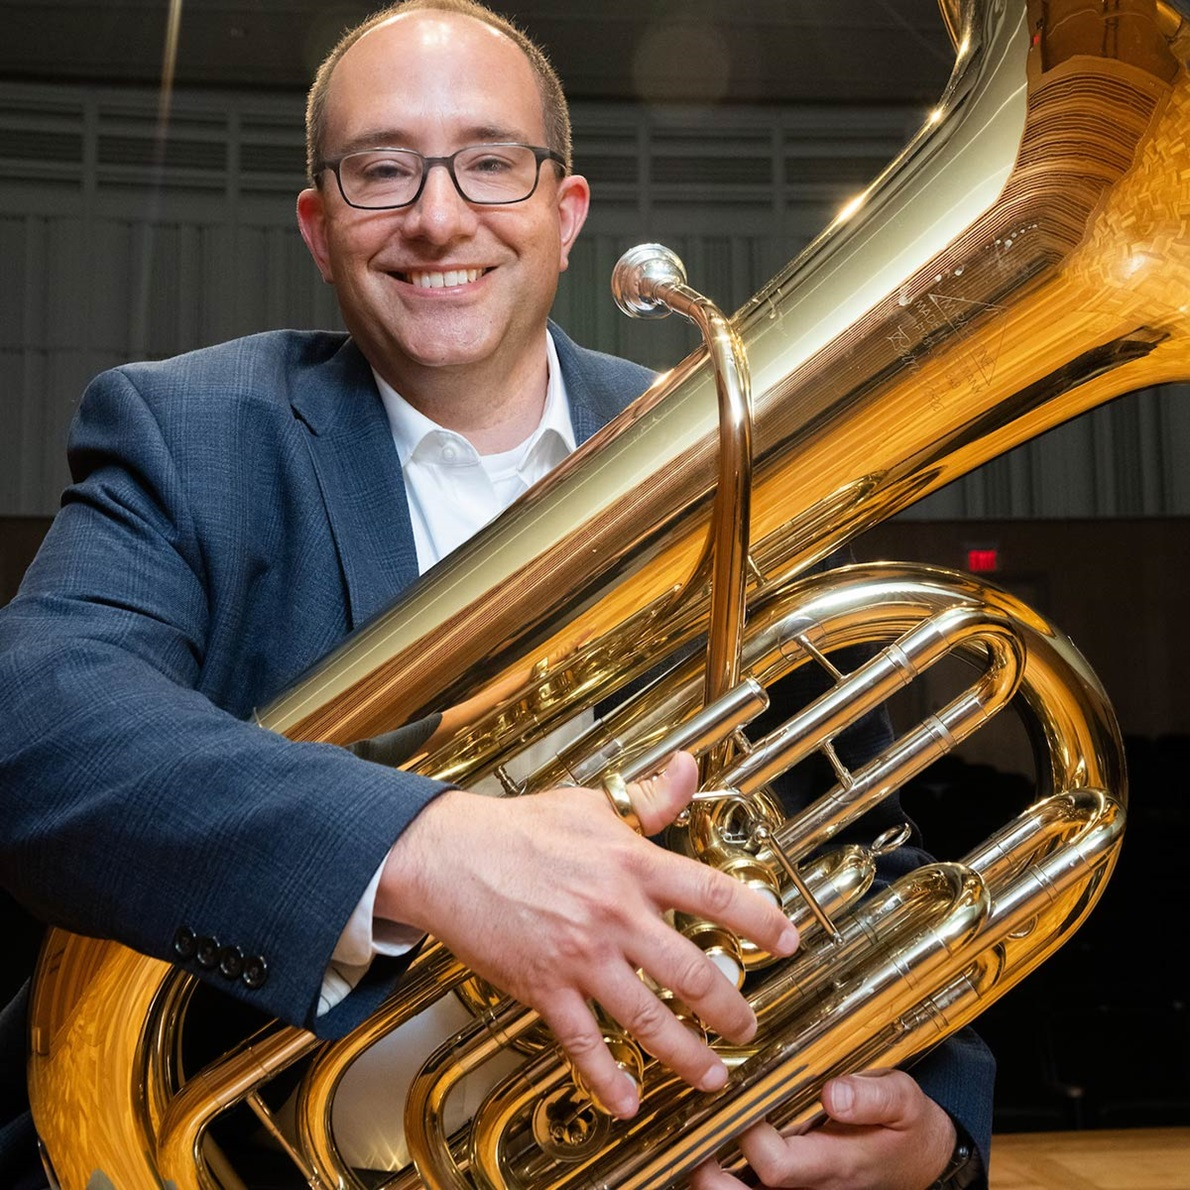 Mark Thiele, Assistant Professor of Tuba, Euphonium and Director of Bands